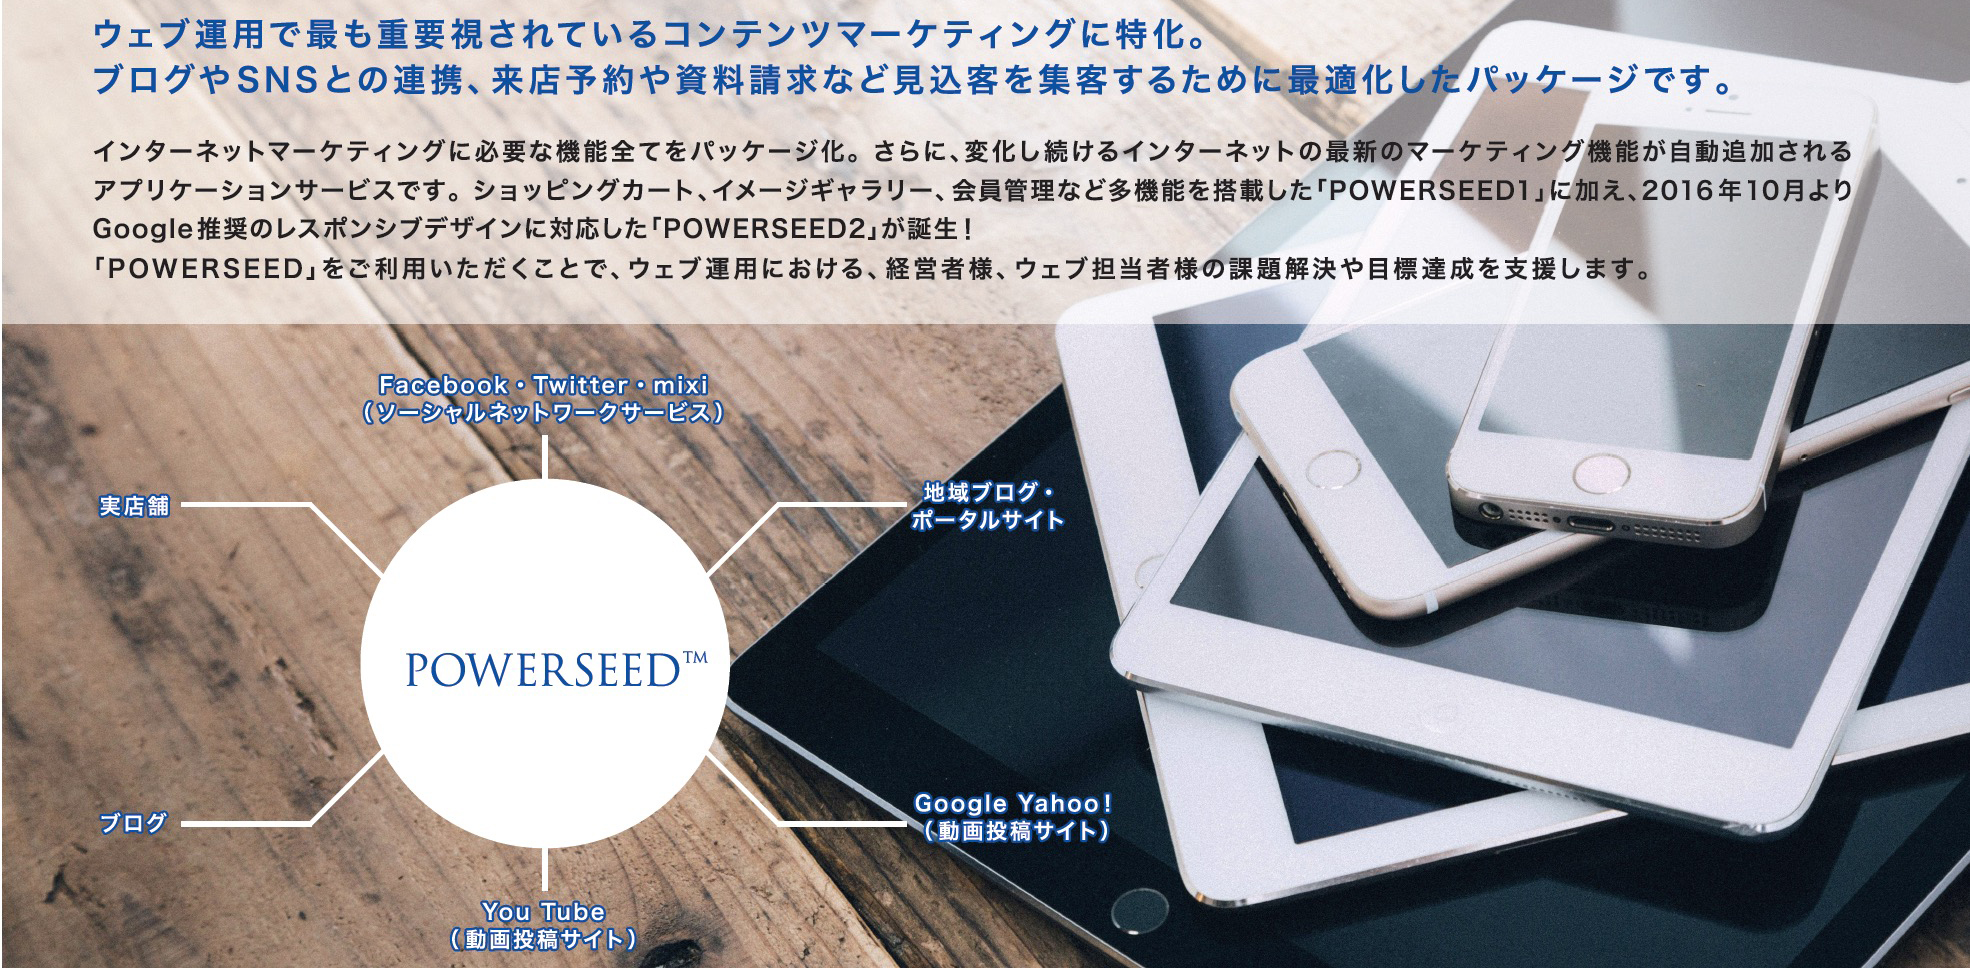 POWERSEEDのご案内